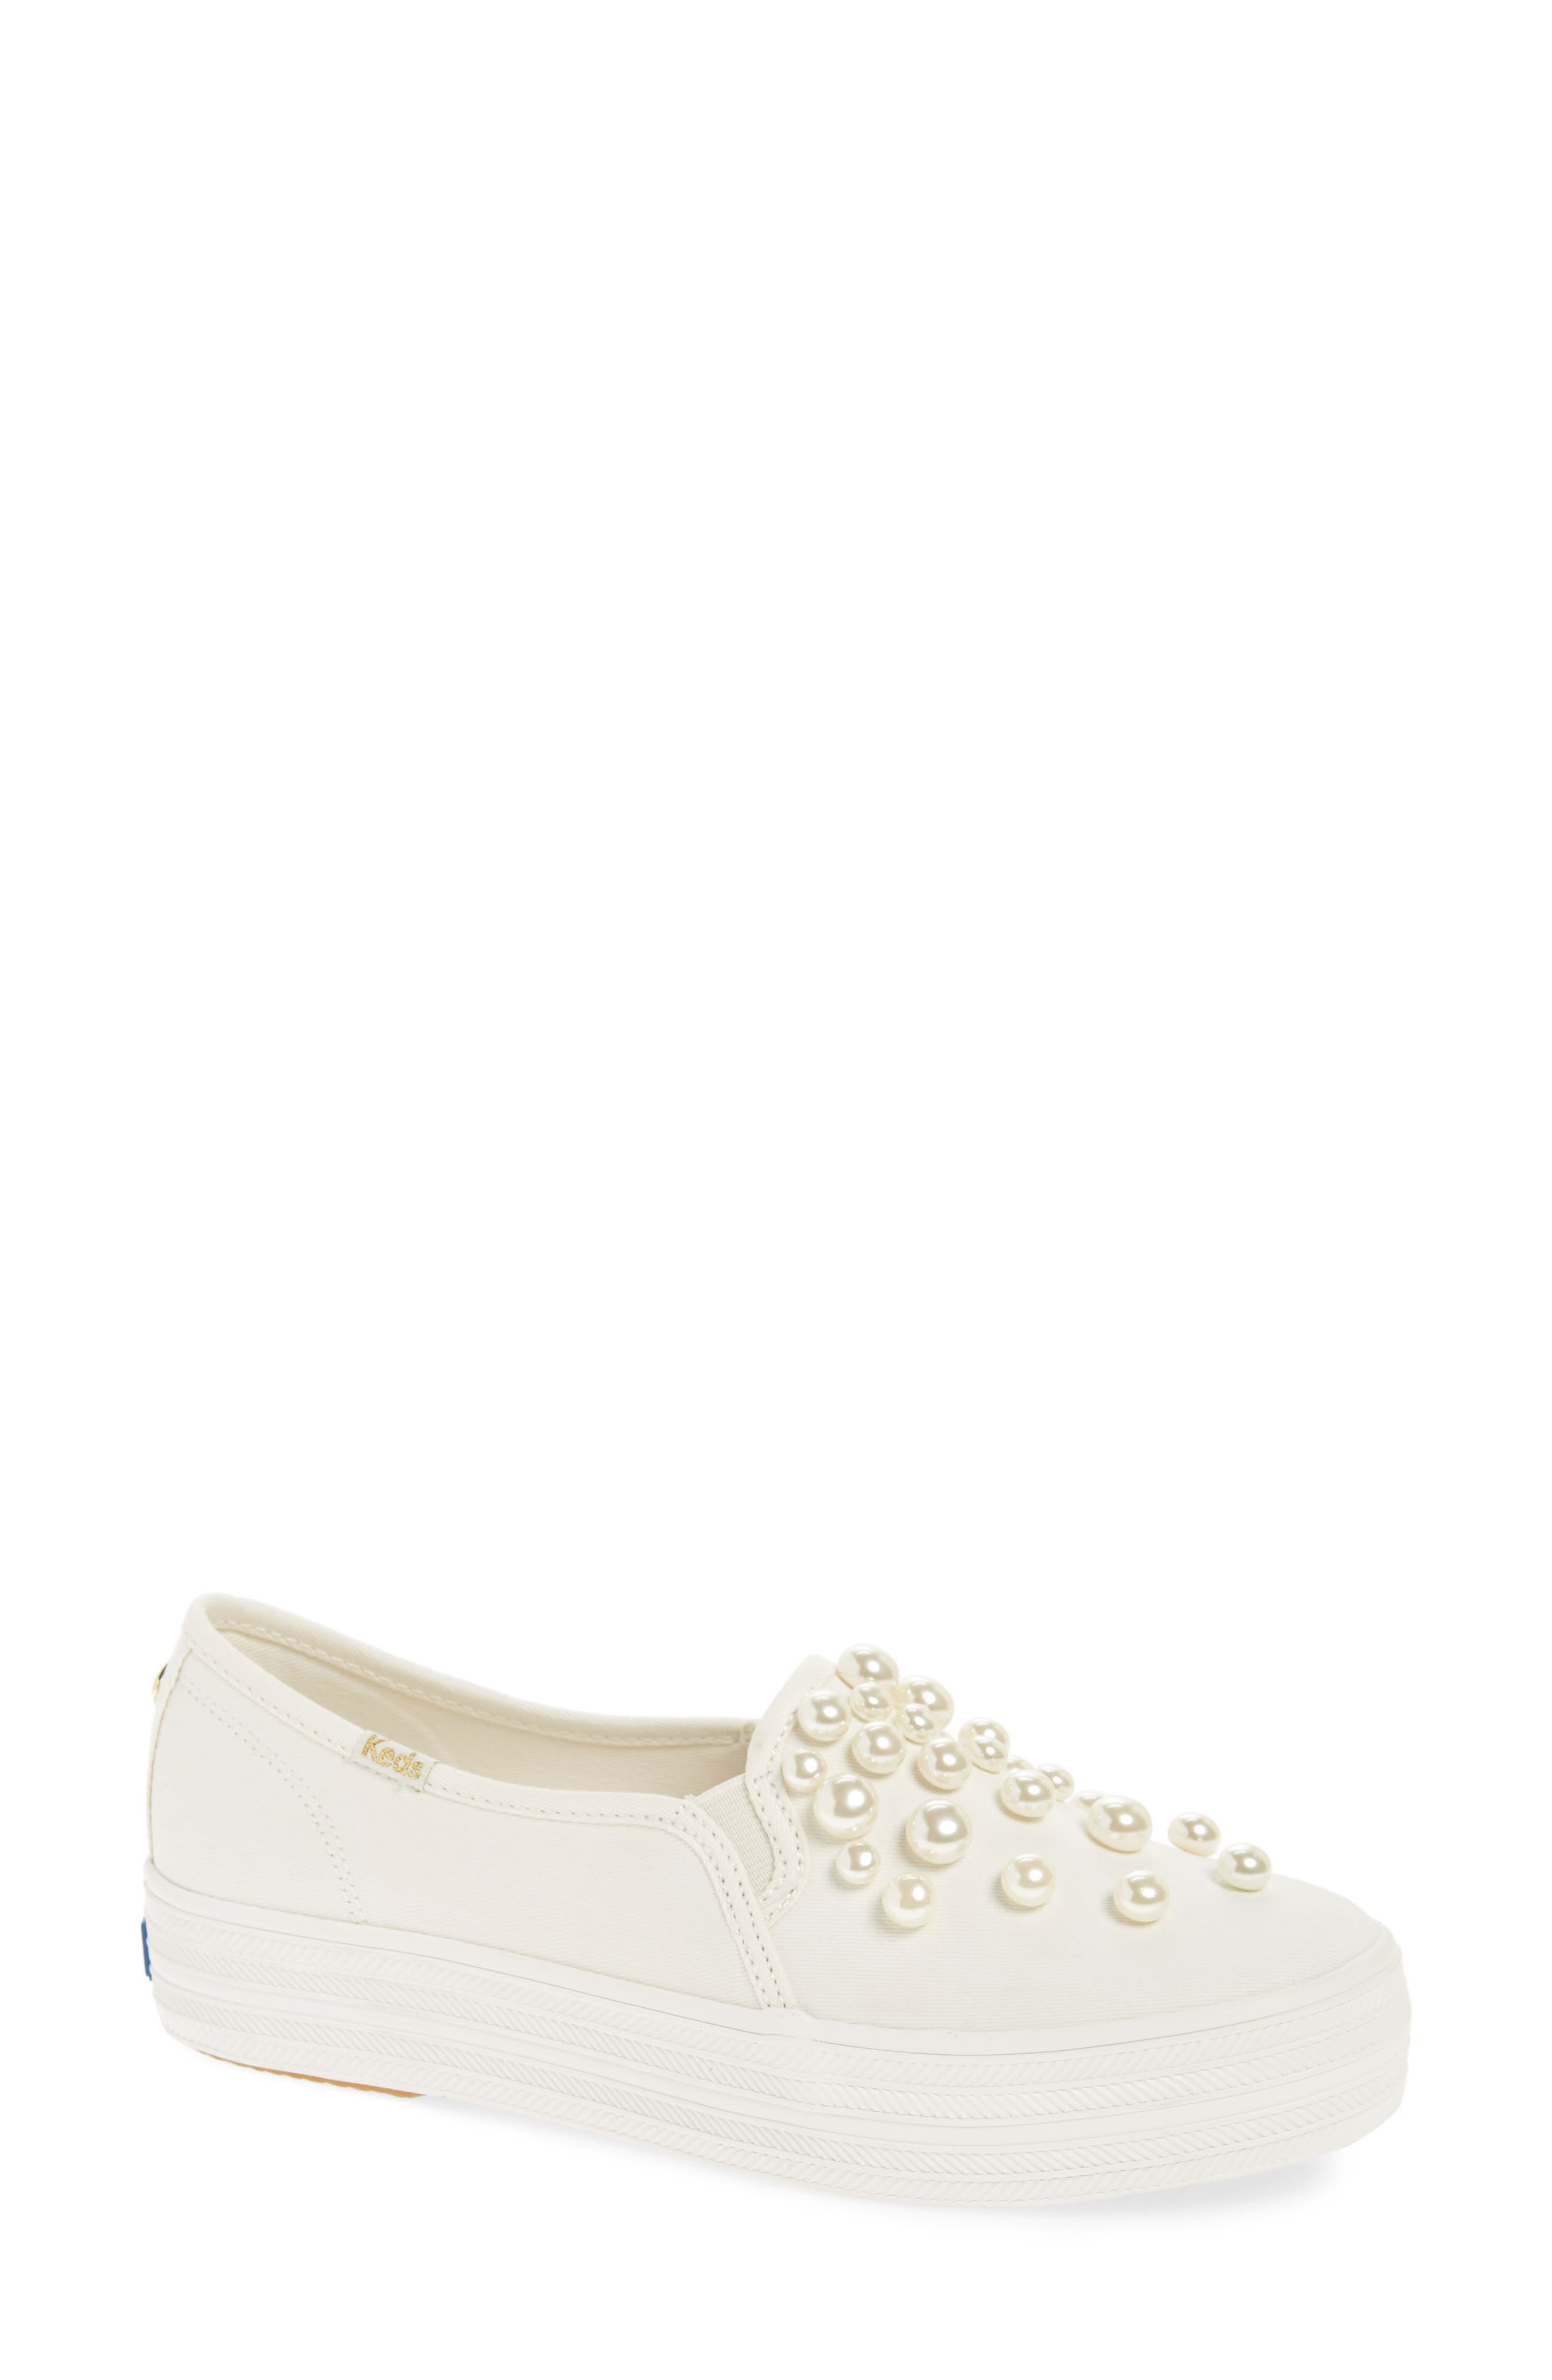 ad01a28ee5d9 keds for kate spade new york